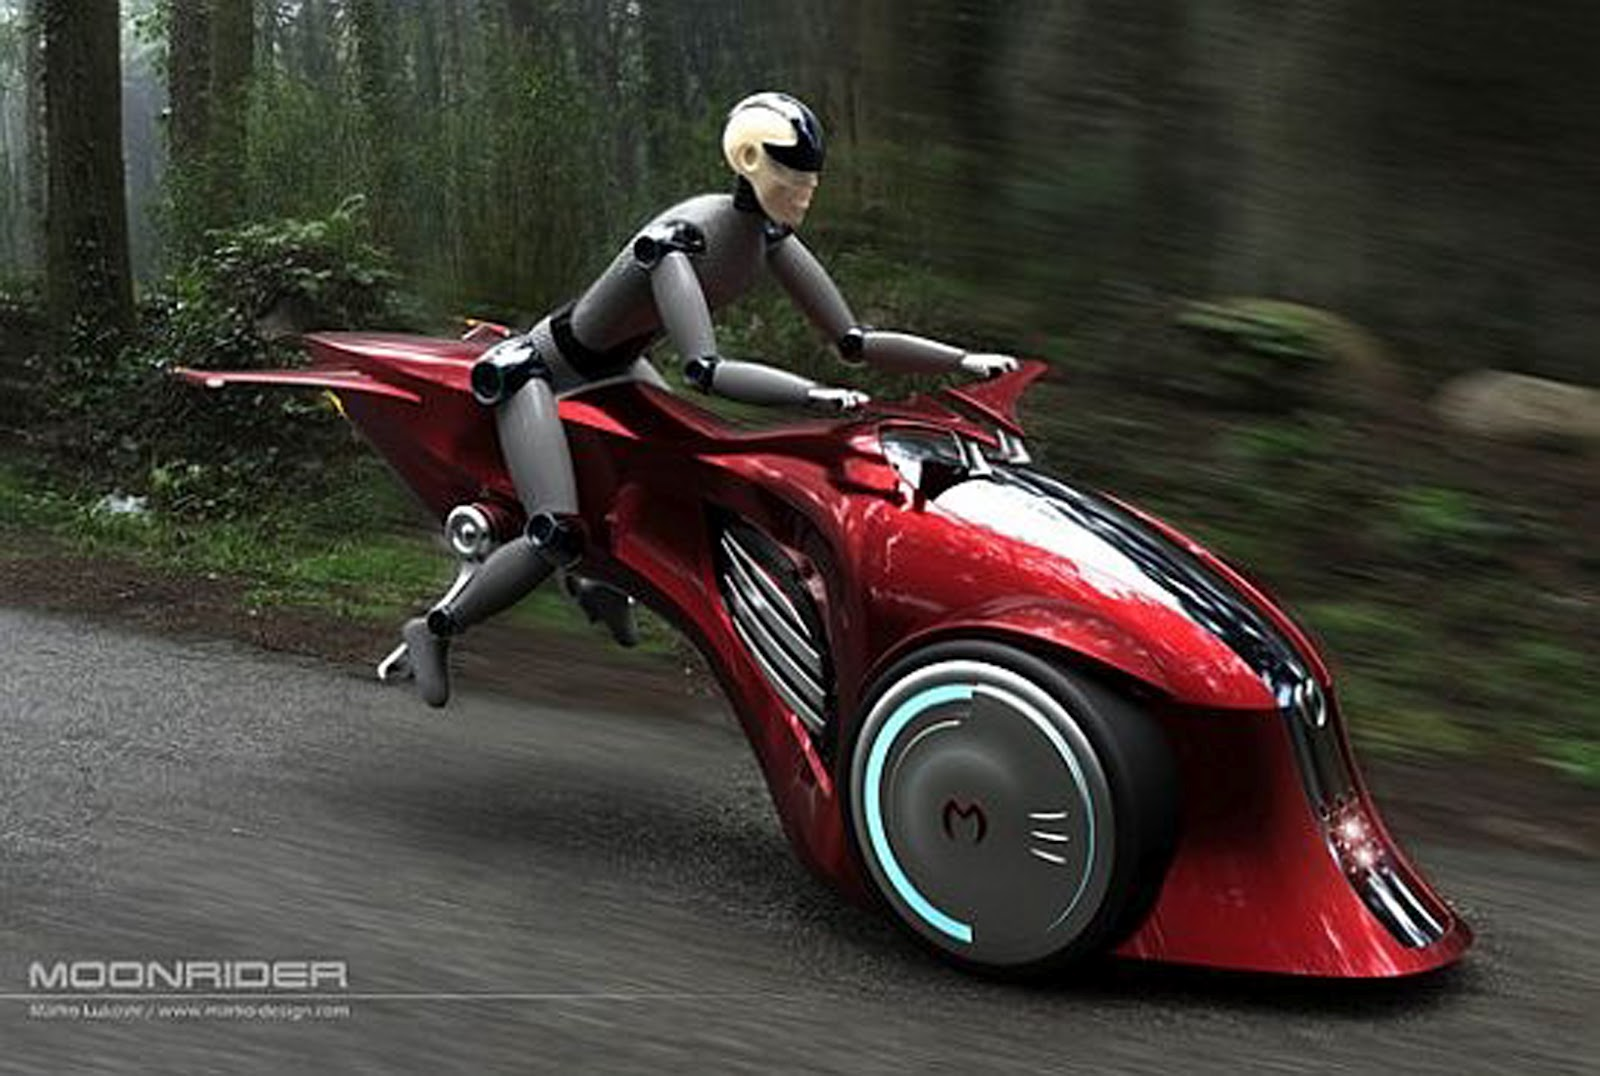 concept motorcycles motorcycle futuristic bike flying cars hybrid vehicles future bikes motorbike moto concepts cycle vehicle most amazing electric jet